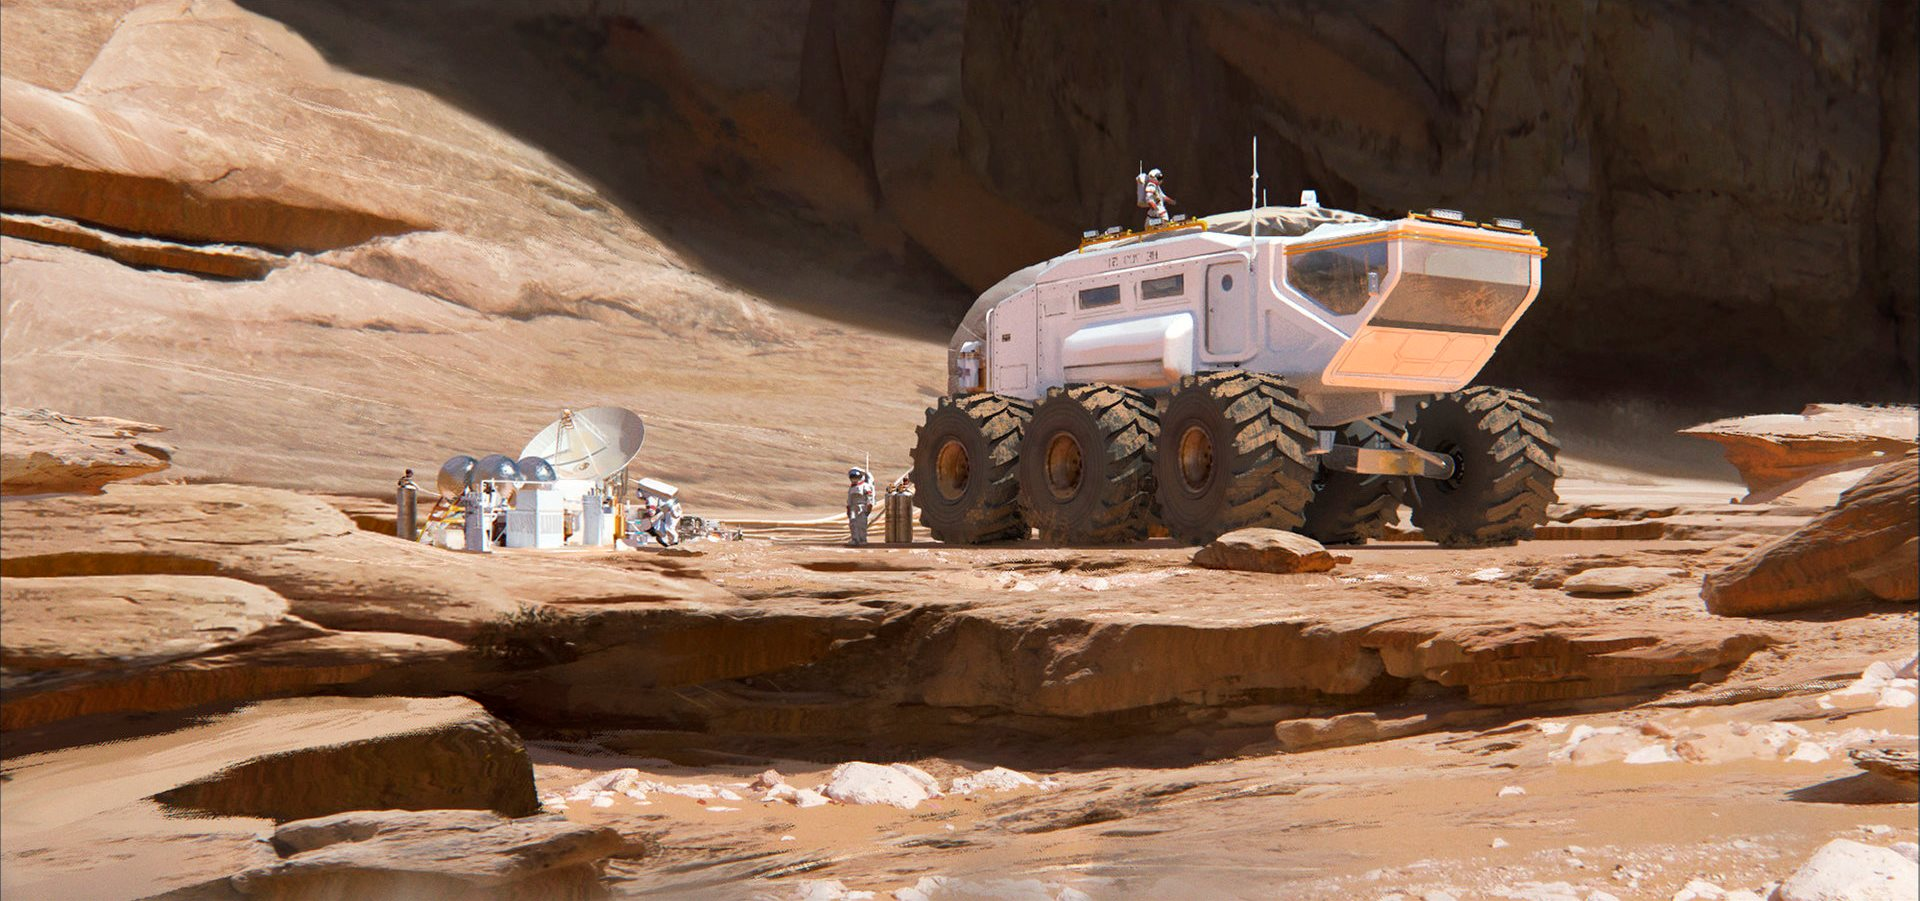 human Mars: Mars rover by Florent Lebrun